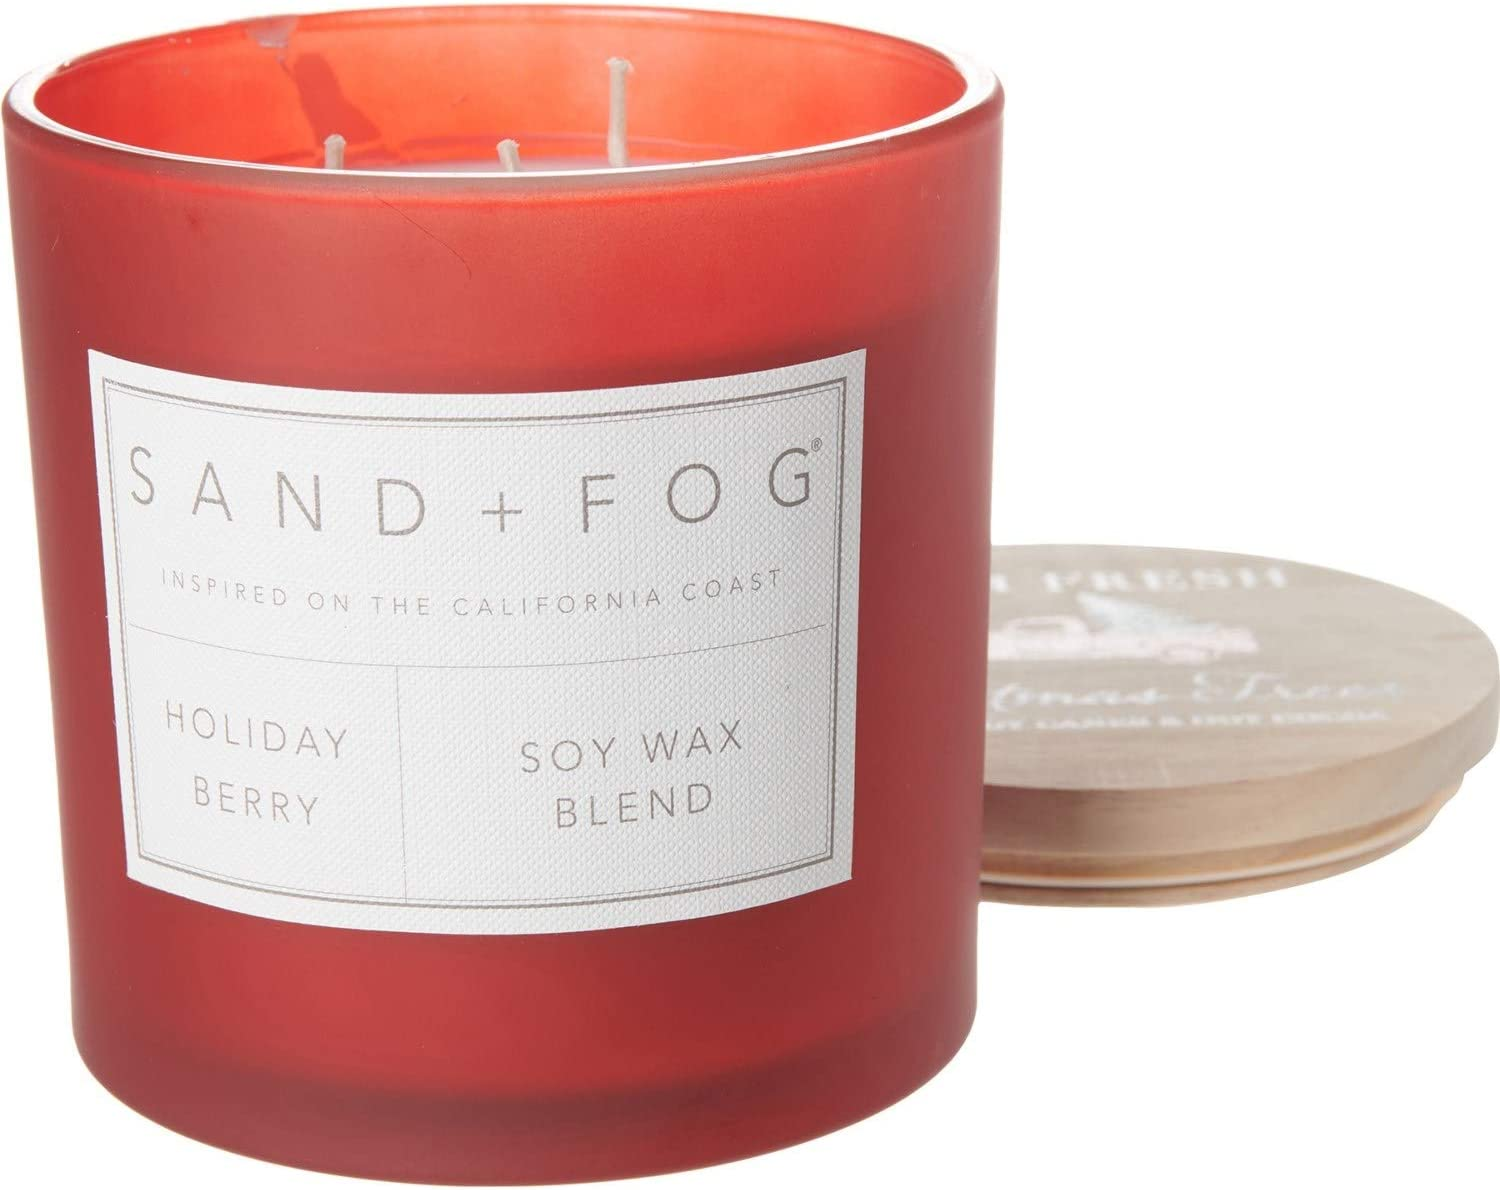 Sand + Fog Holiday Berry Scented Candle, Large Triple Wick, 25 oz